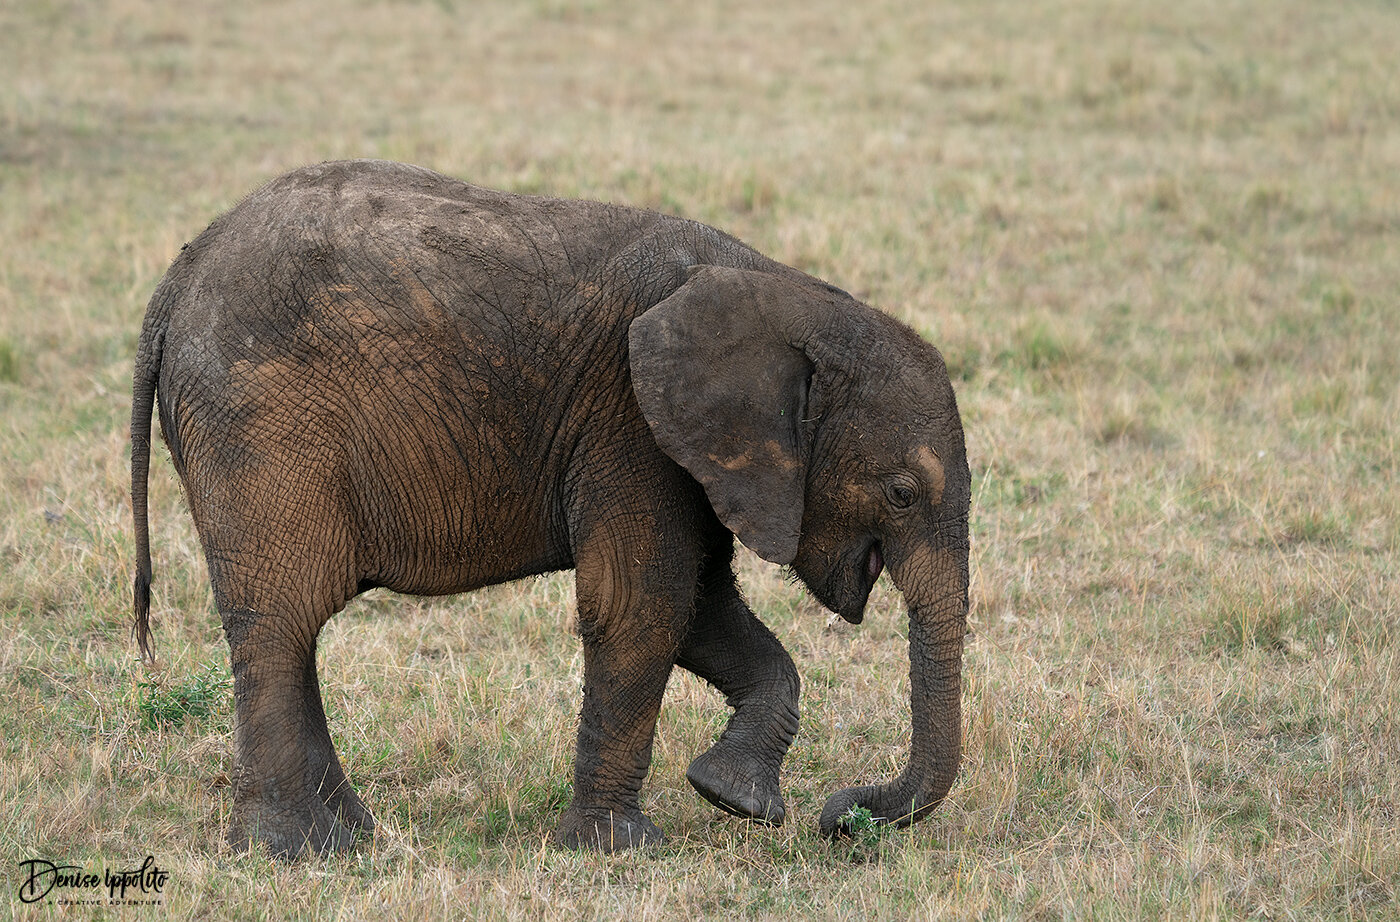 Probably the cutest little Elephant I ever saw. I took so many images of it.